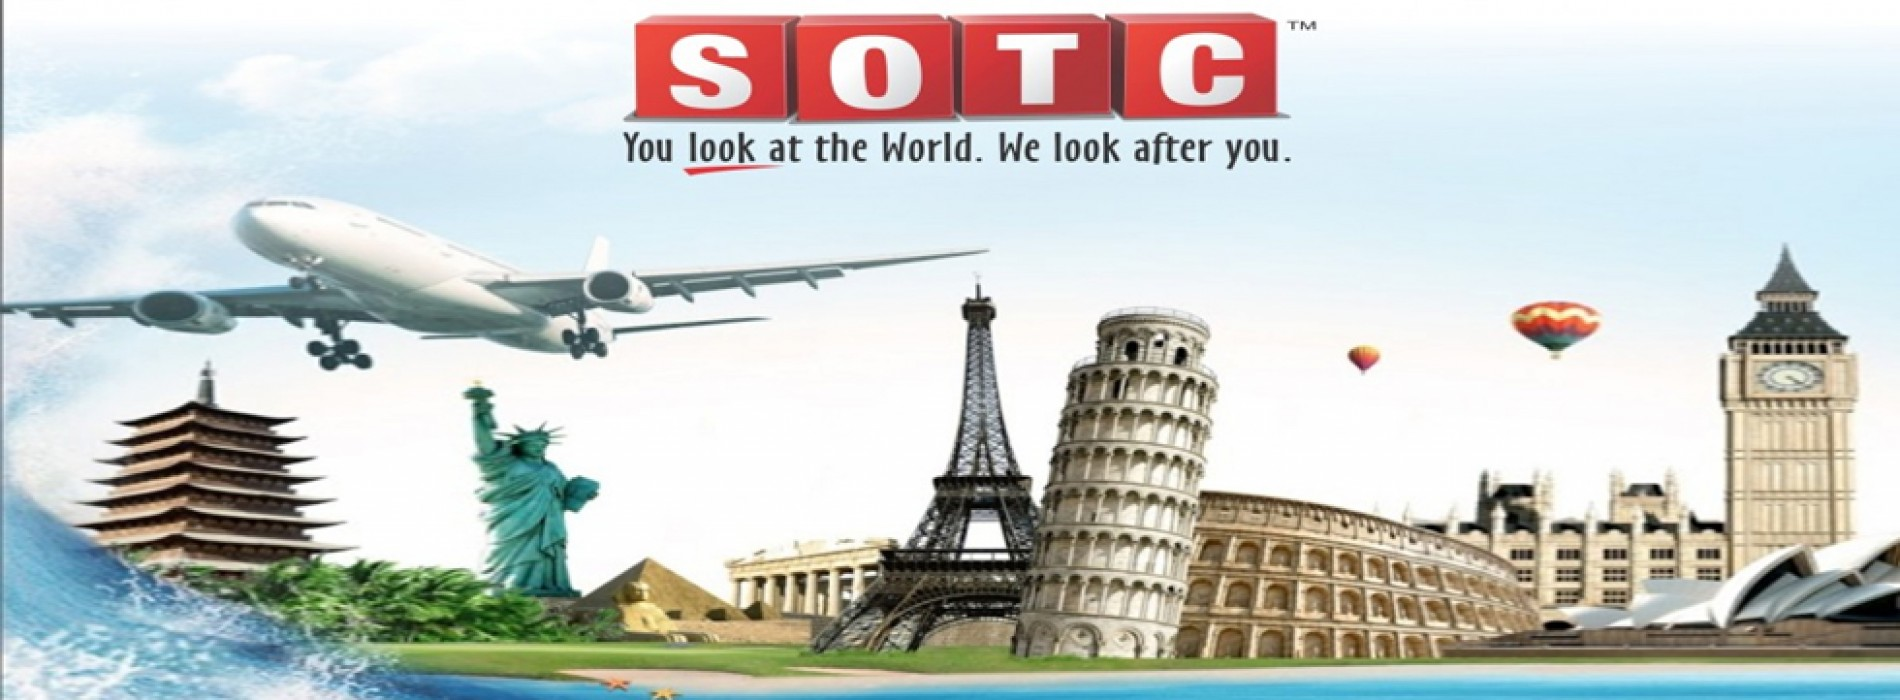 SOTC launches bespoke tour packages to attract Gujarati travellers